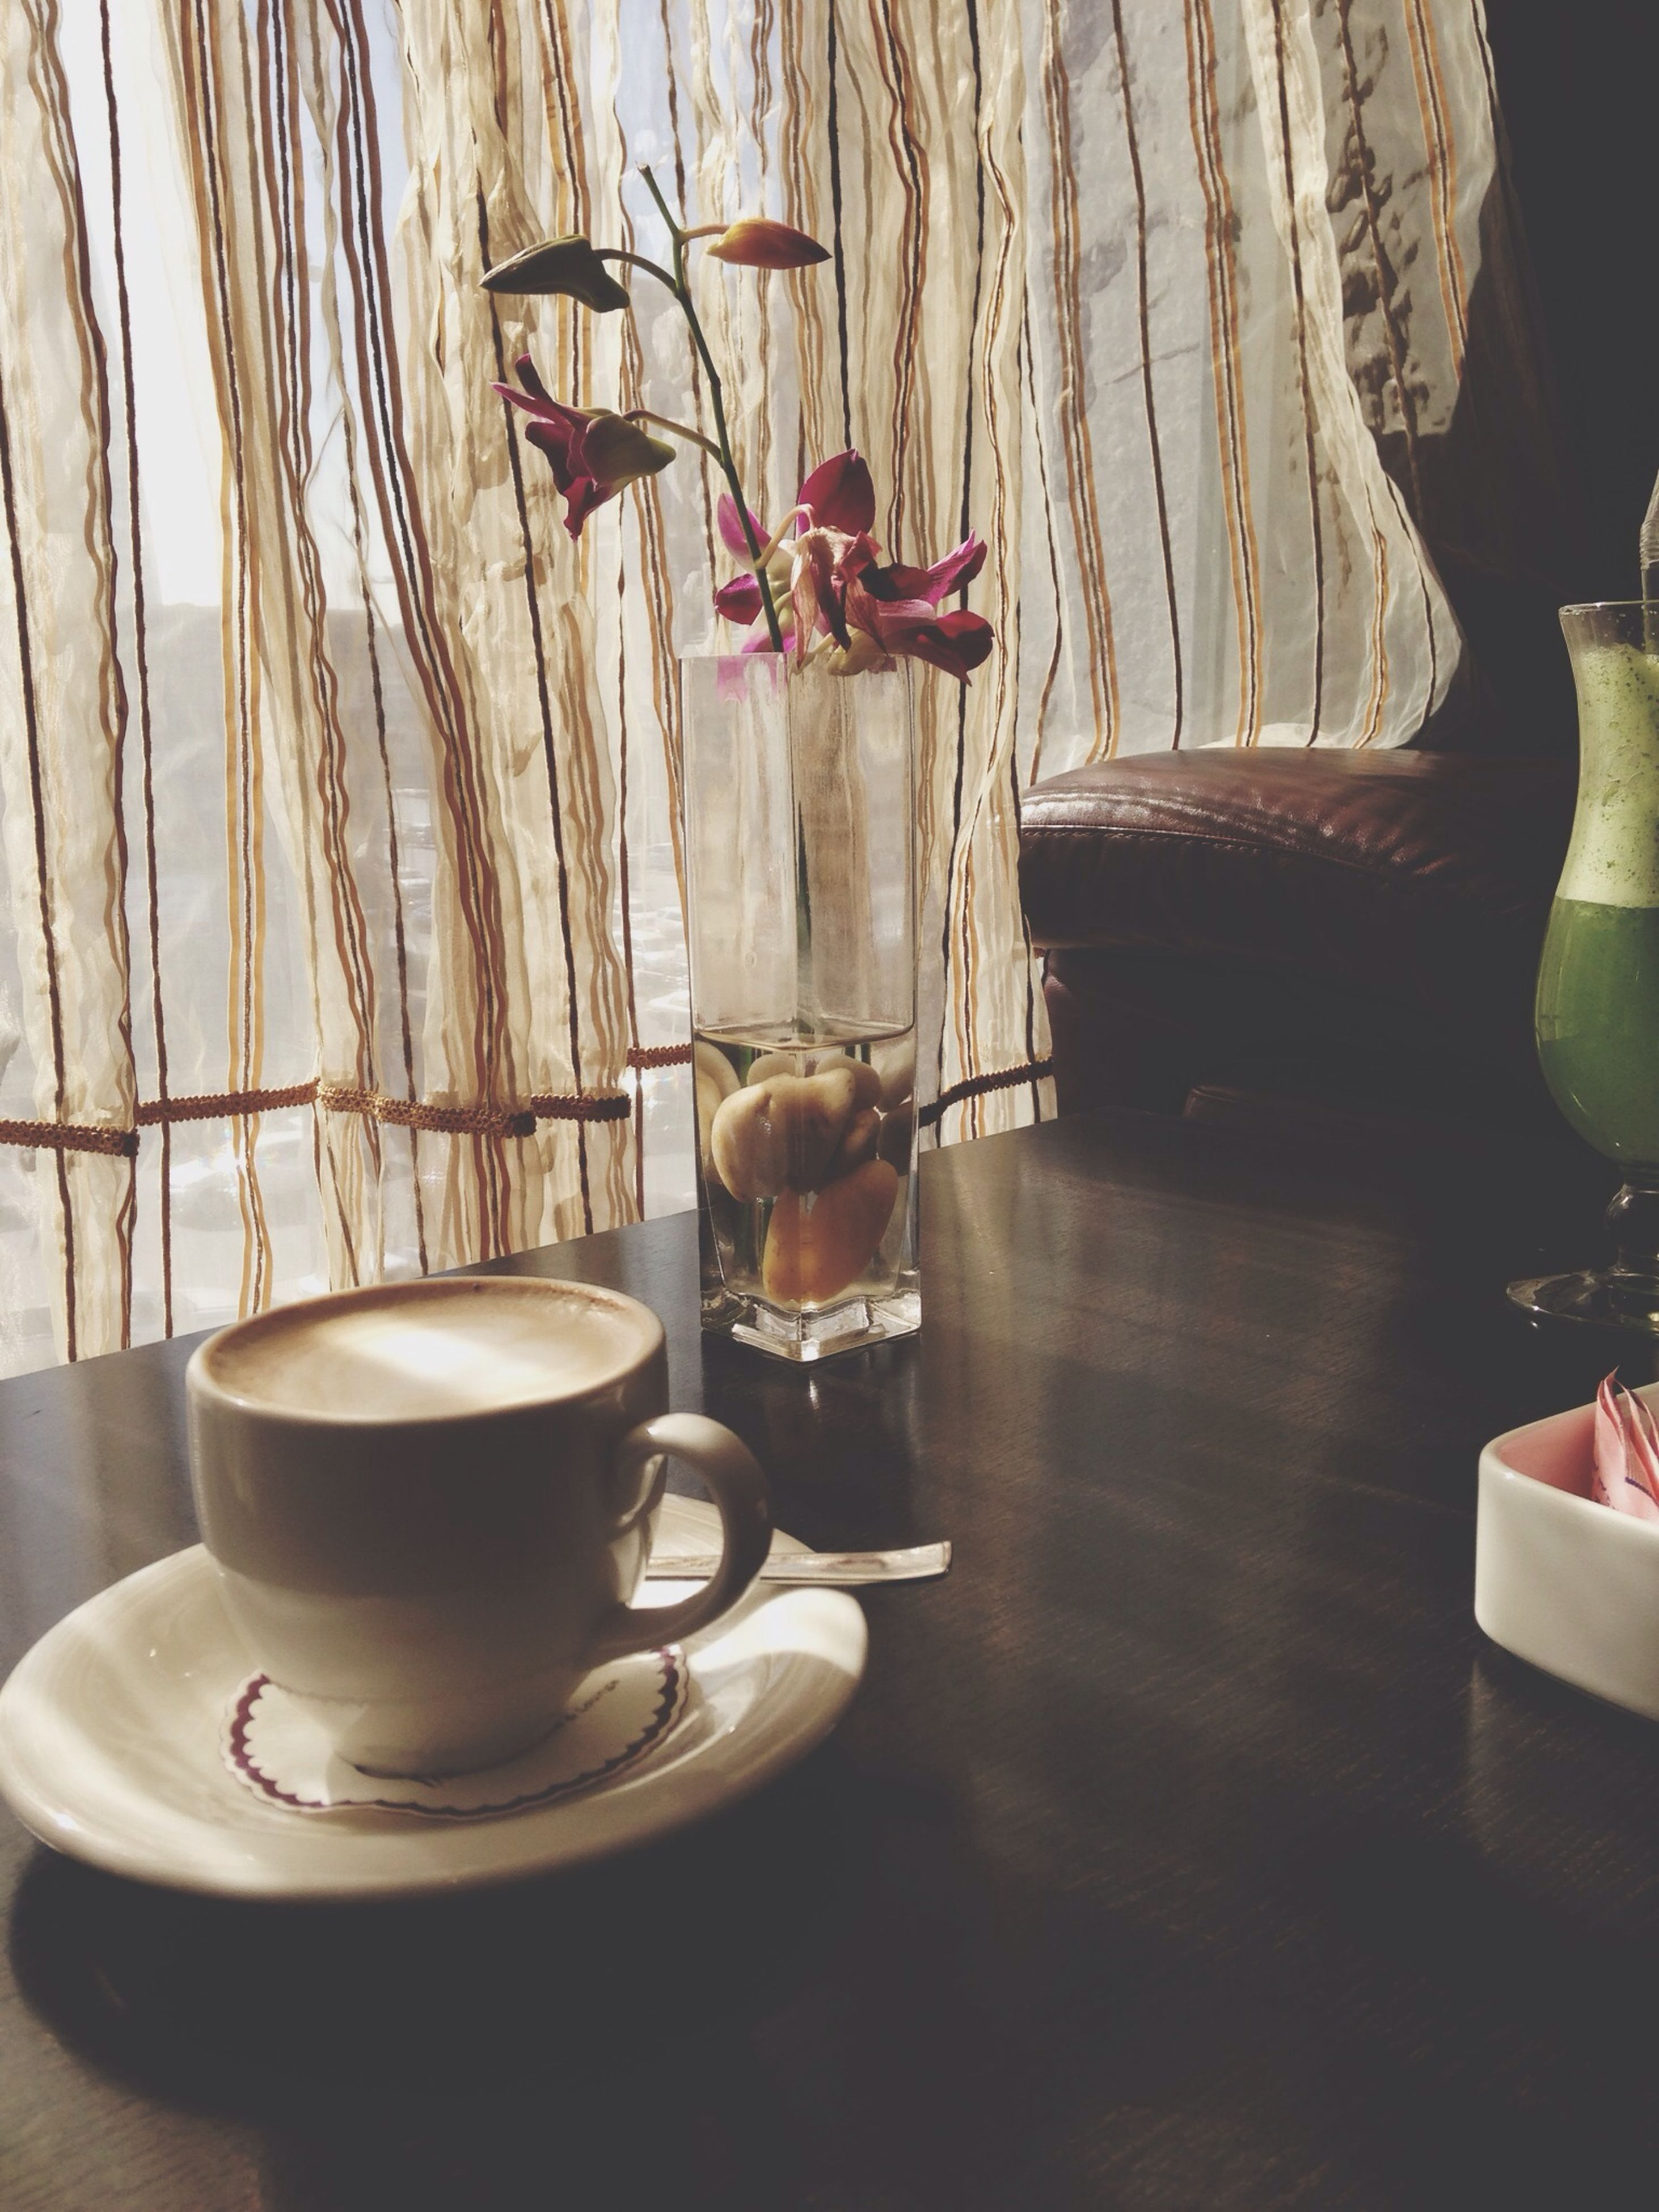 indoors, table, food and drink, chair, drink, coffee cup, still life, freshness, wood - material, home interior, plate, saucer, coffee - drink, spoon, vase, absence, bowl, dining table, refreshment, sunlight